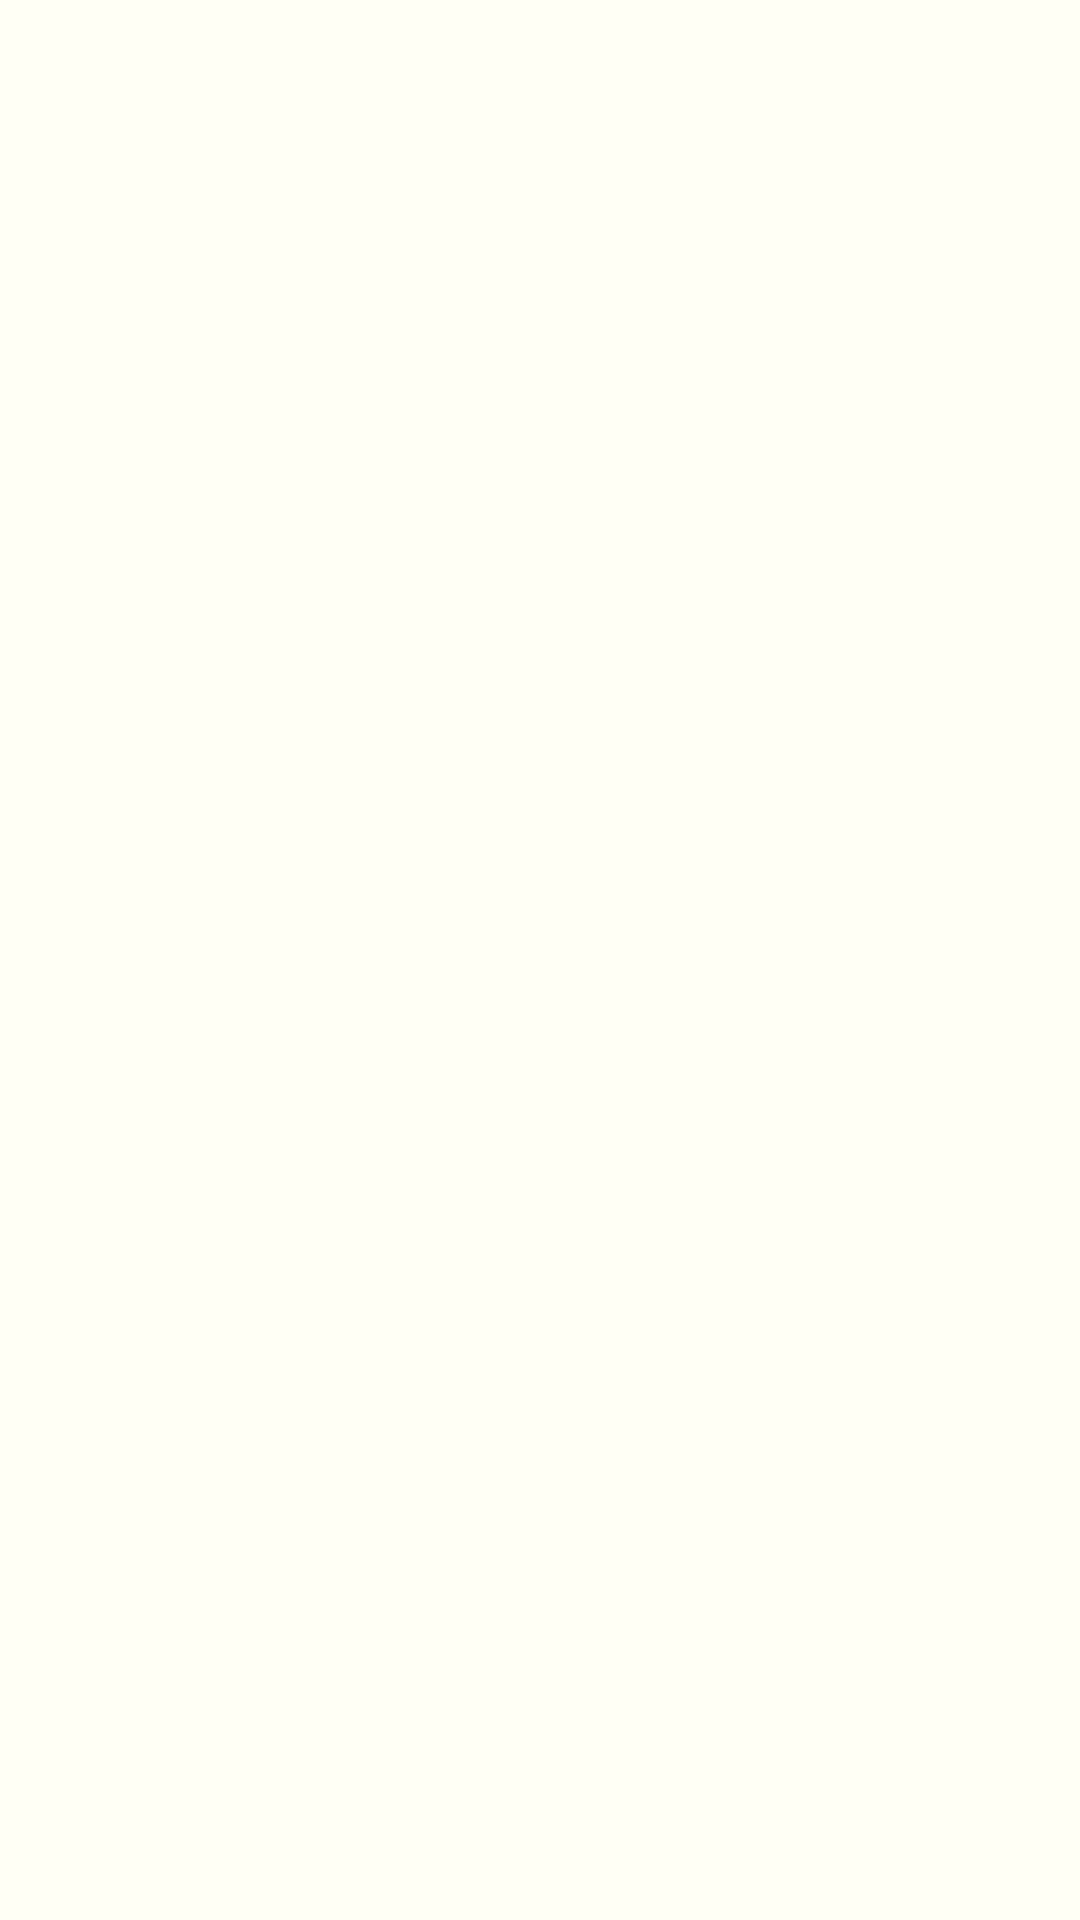 Plain White Wallpaper Iphone X Cream Background 183 ① Download Free Awesome Full Hd